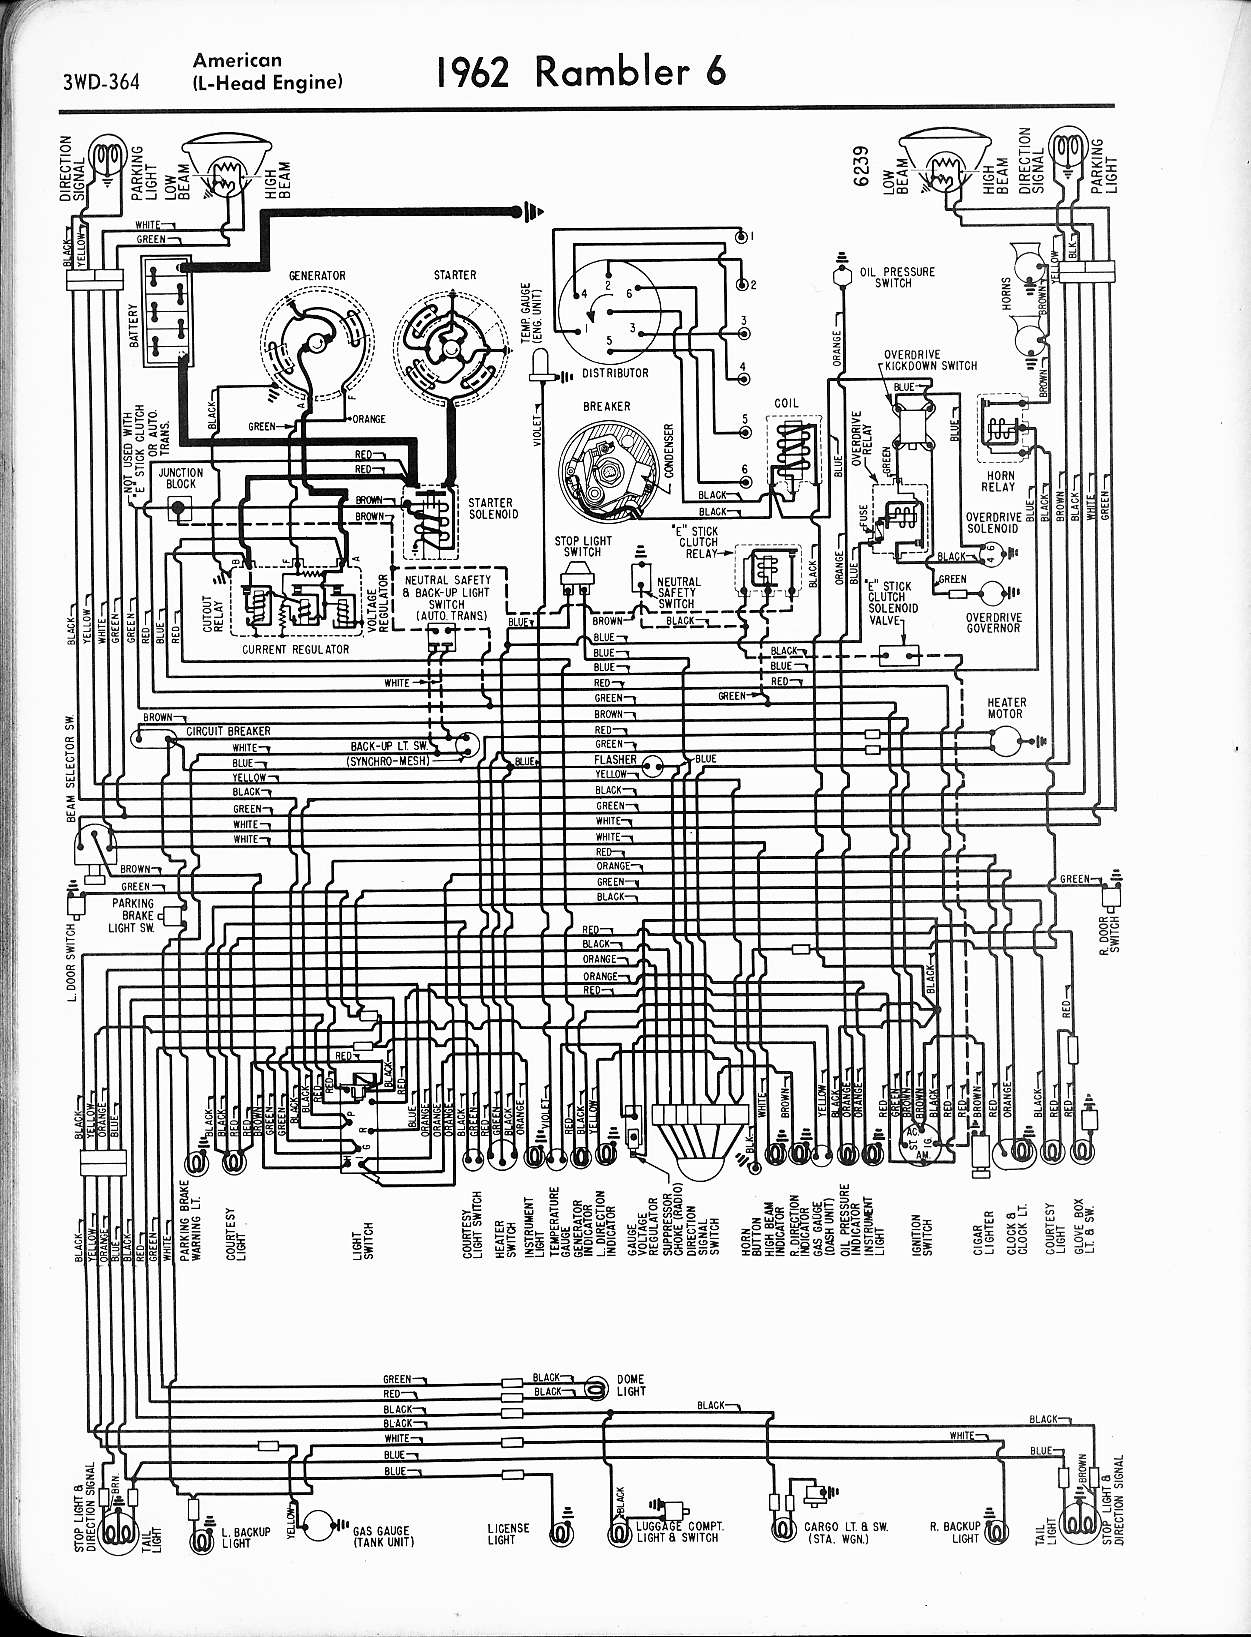 rambler wiring diagrams the old car manual project rh oldcarmanualproject com 1971 AMC Rebel 1967 AMC Rebel